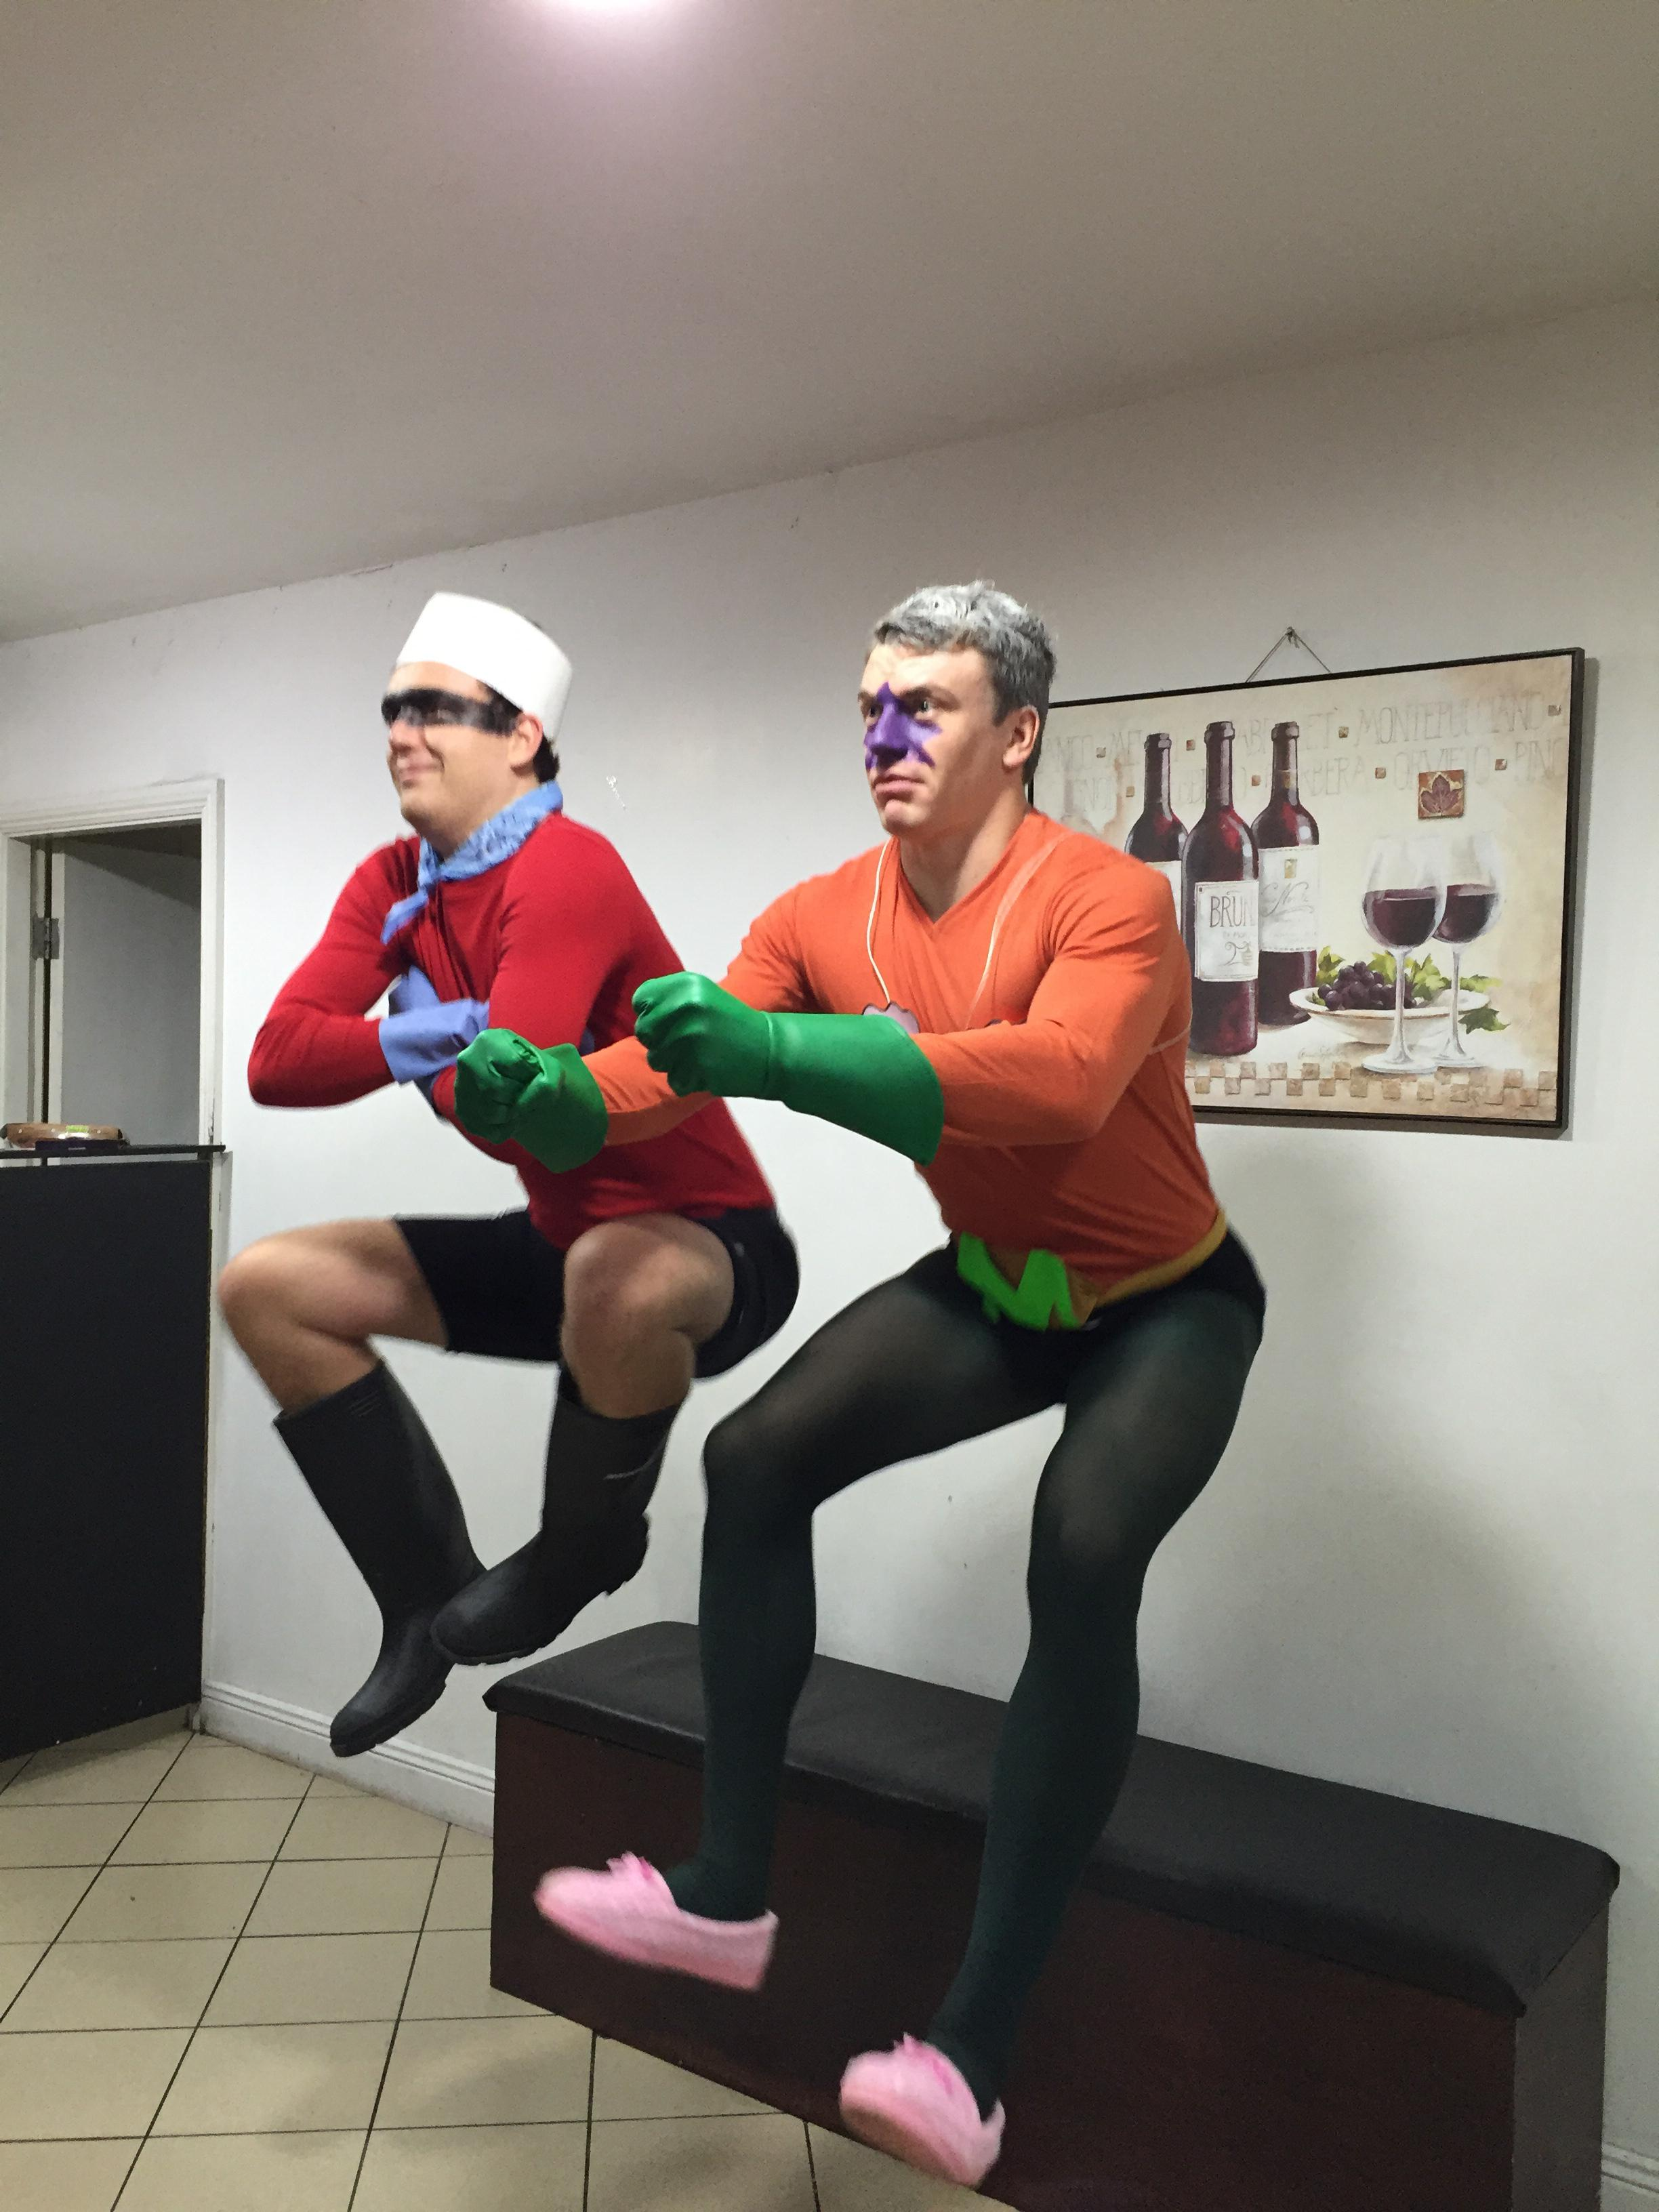 76 - The Very Best Costumes From Halloween 2015